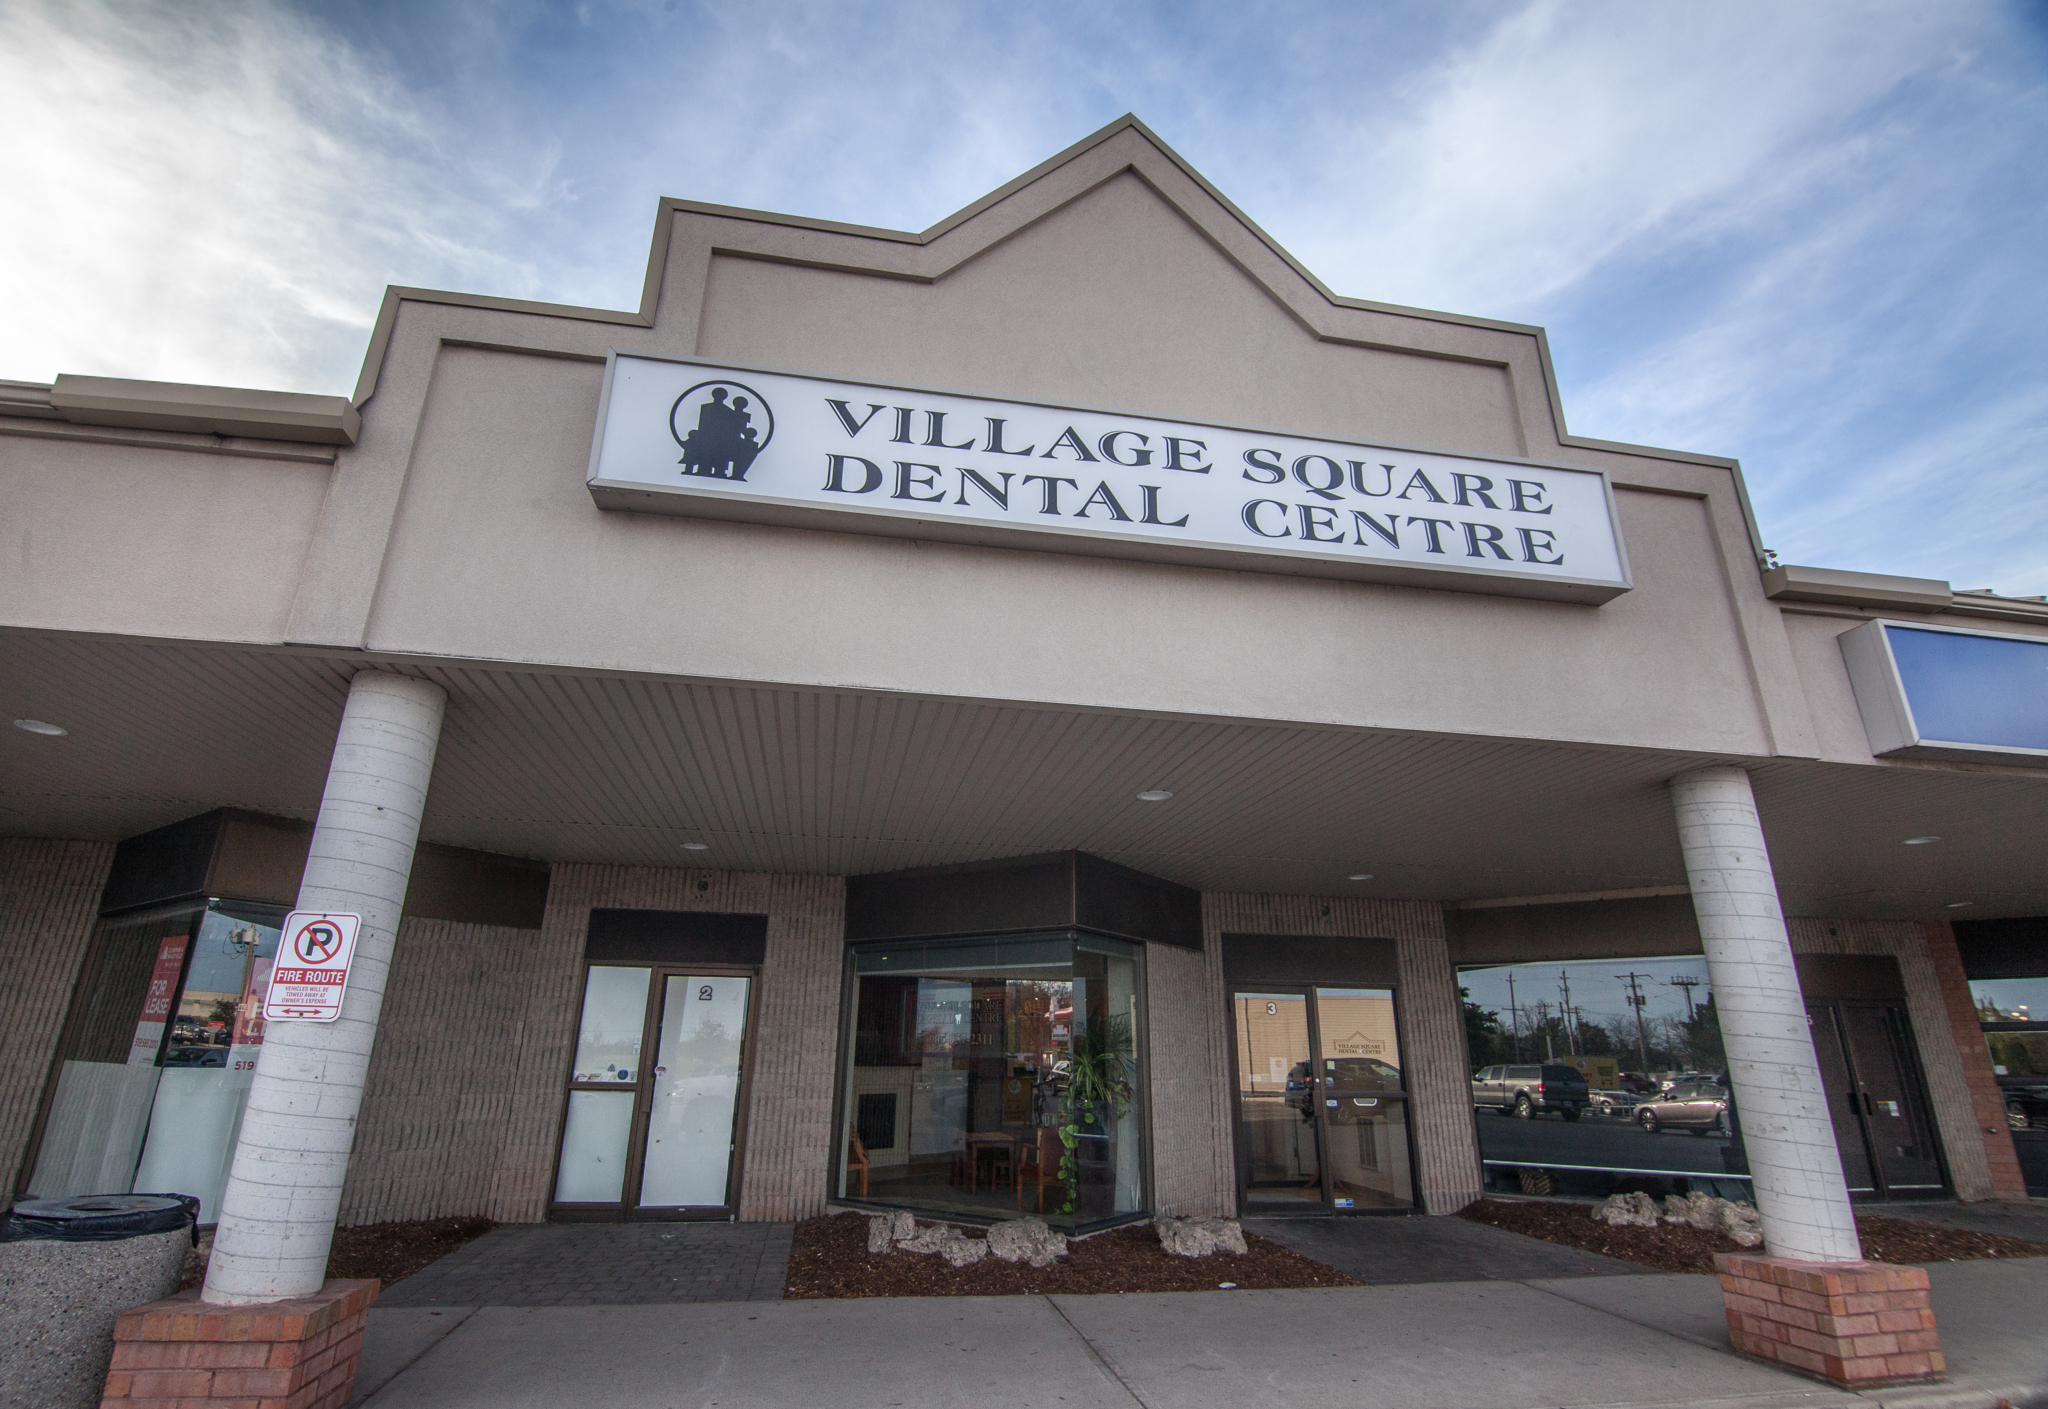 Images Village Square Dental Centre